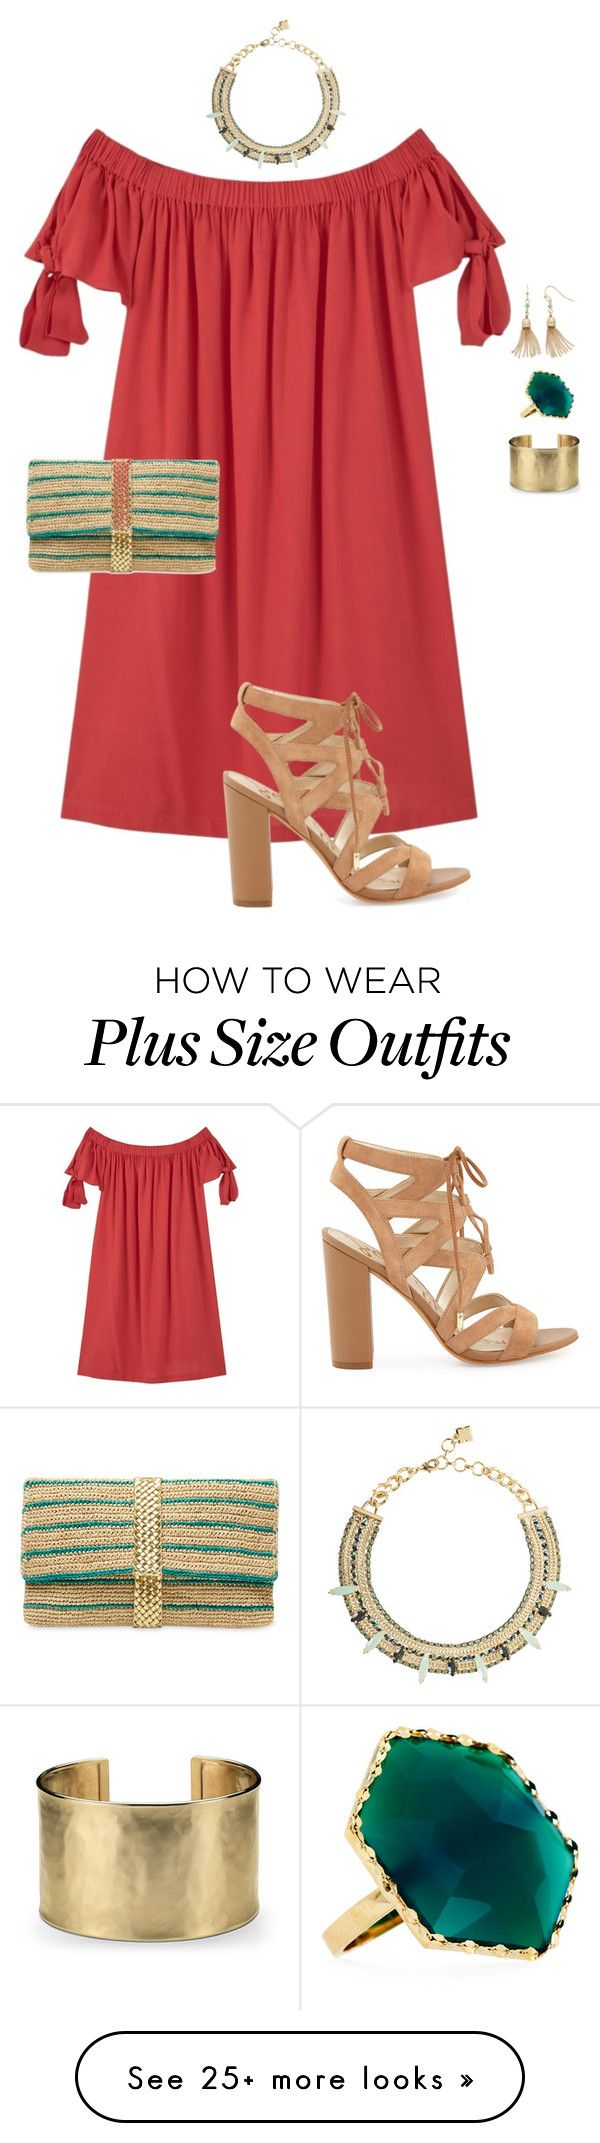 """plus size simple chic date night"" by kristie-payne on Polyvore featuring MANGO, Lana, Blue Nile, BCBGMAXAZRIA, Sam Edelman, LC Lauren Conrad and Mar y Sol"